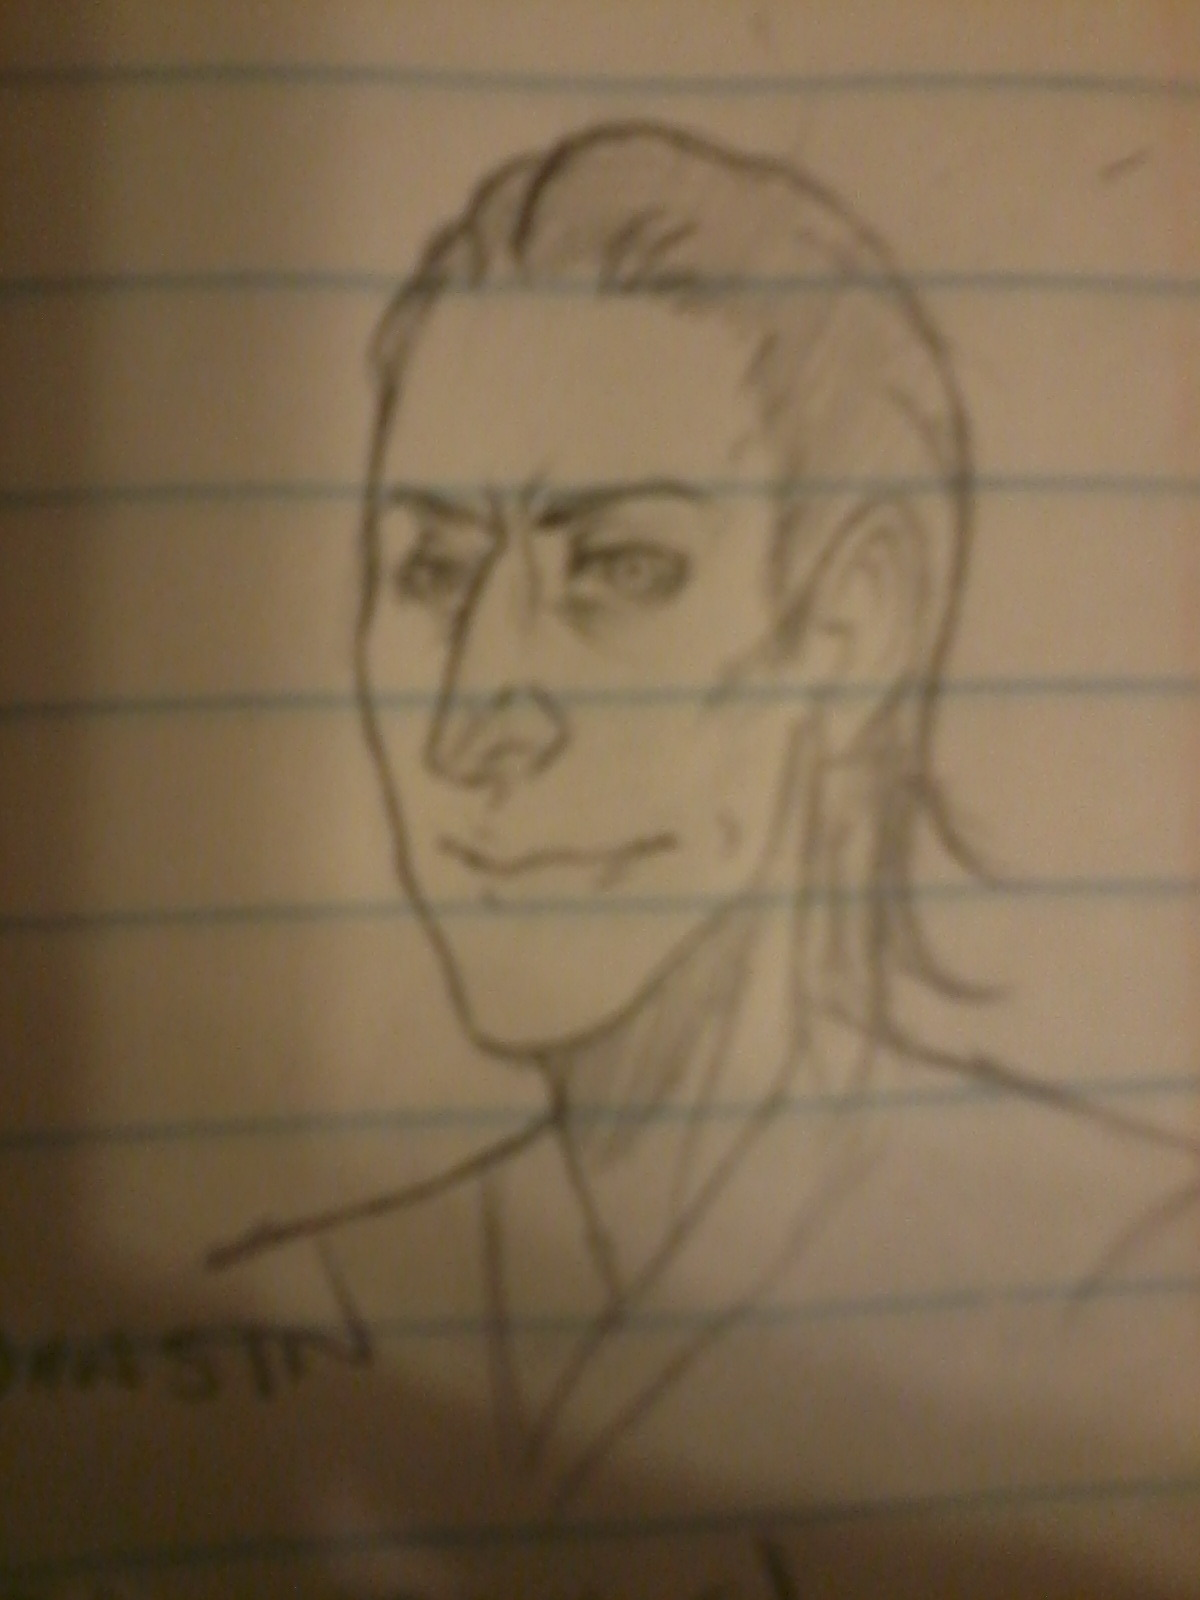 I tried to draw loki and I havent seen thor or avengers yet fuq da polis I do what I want sobbb